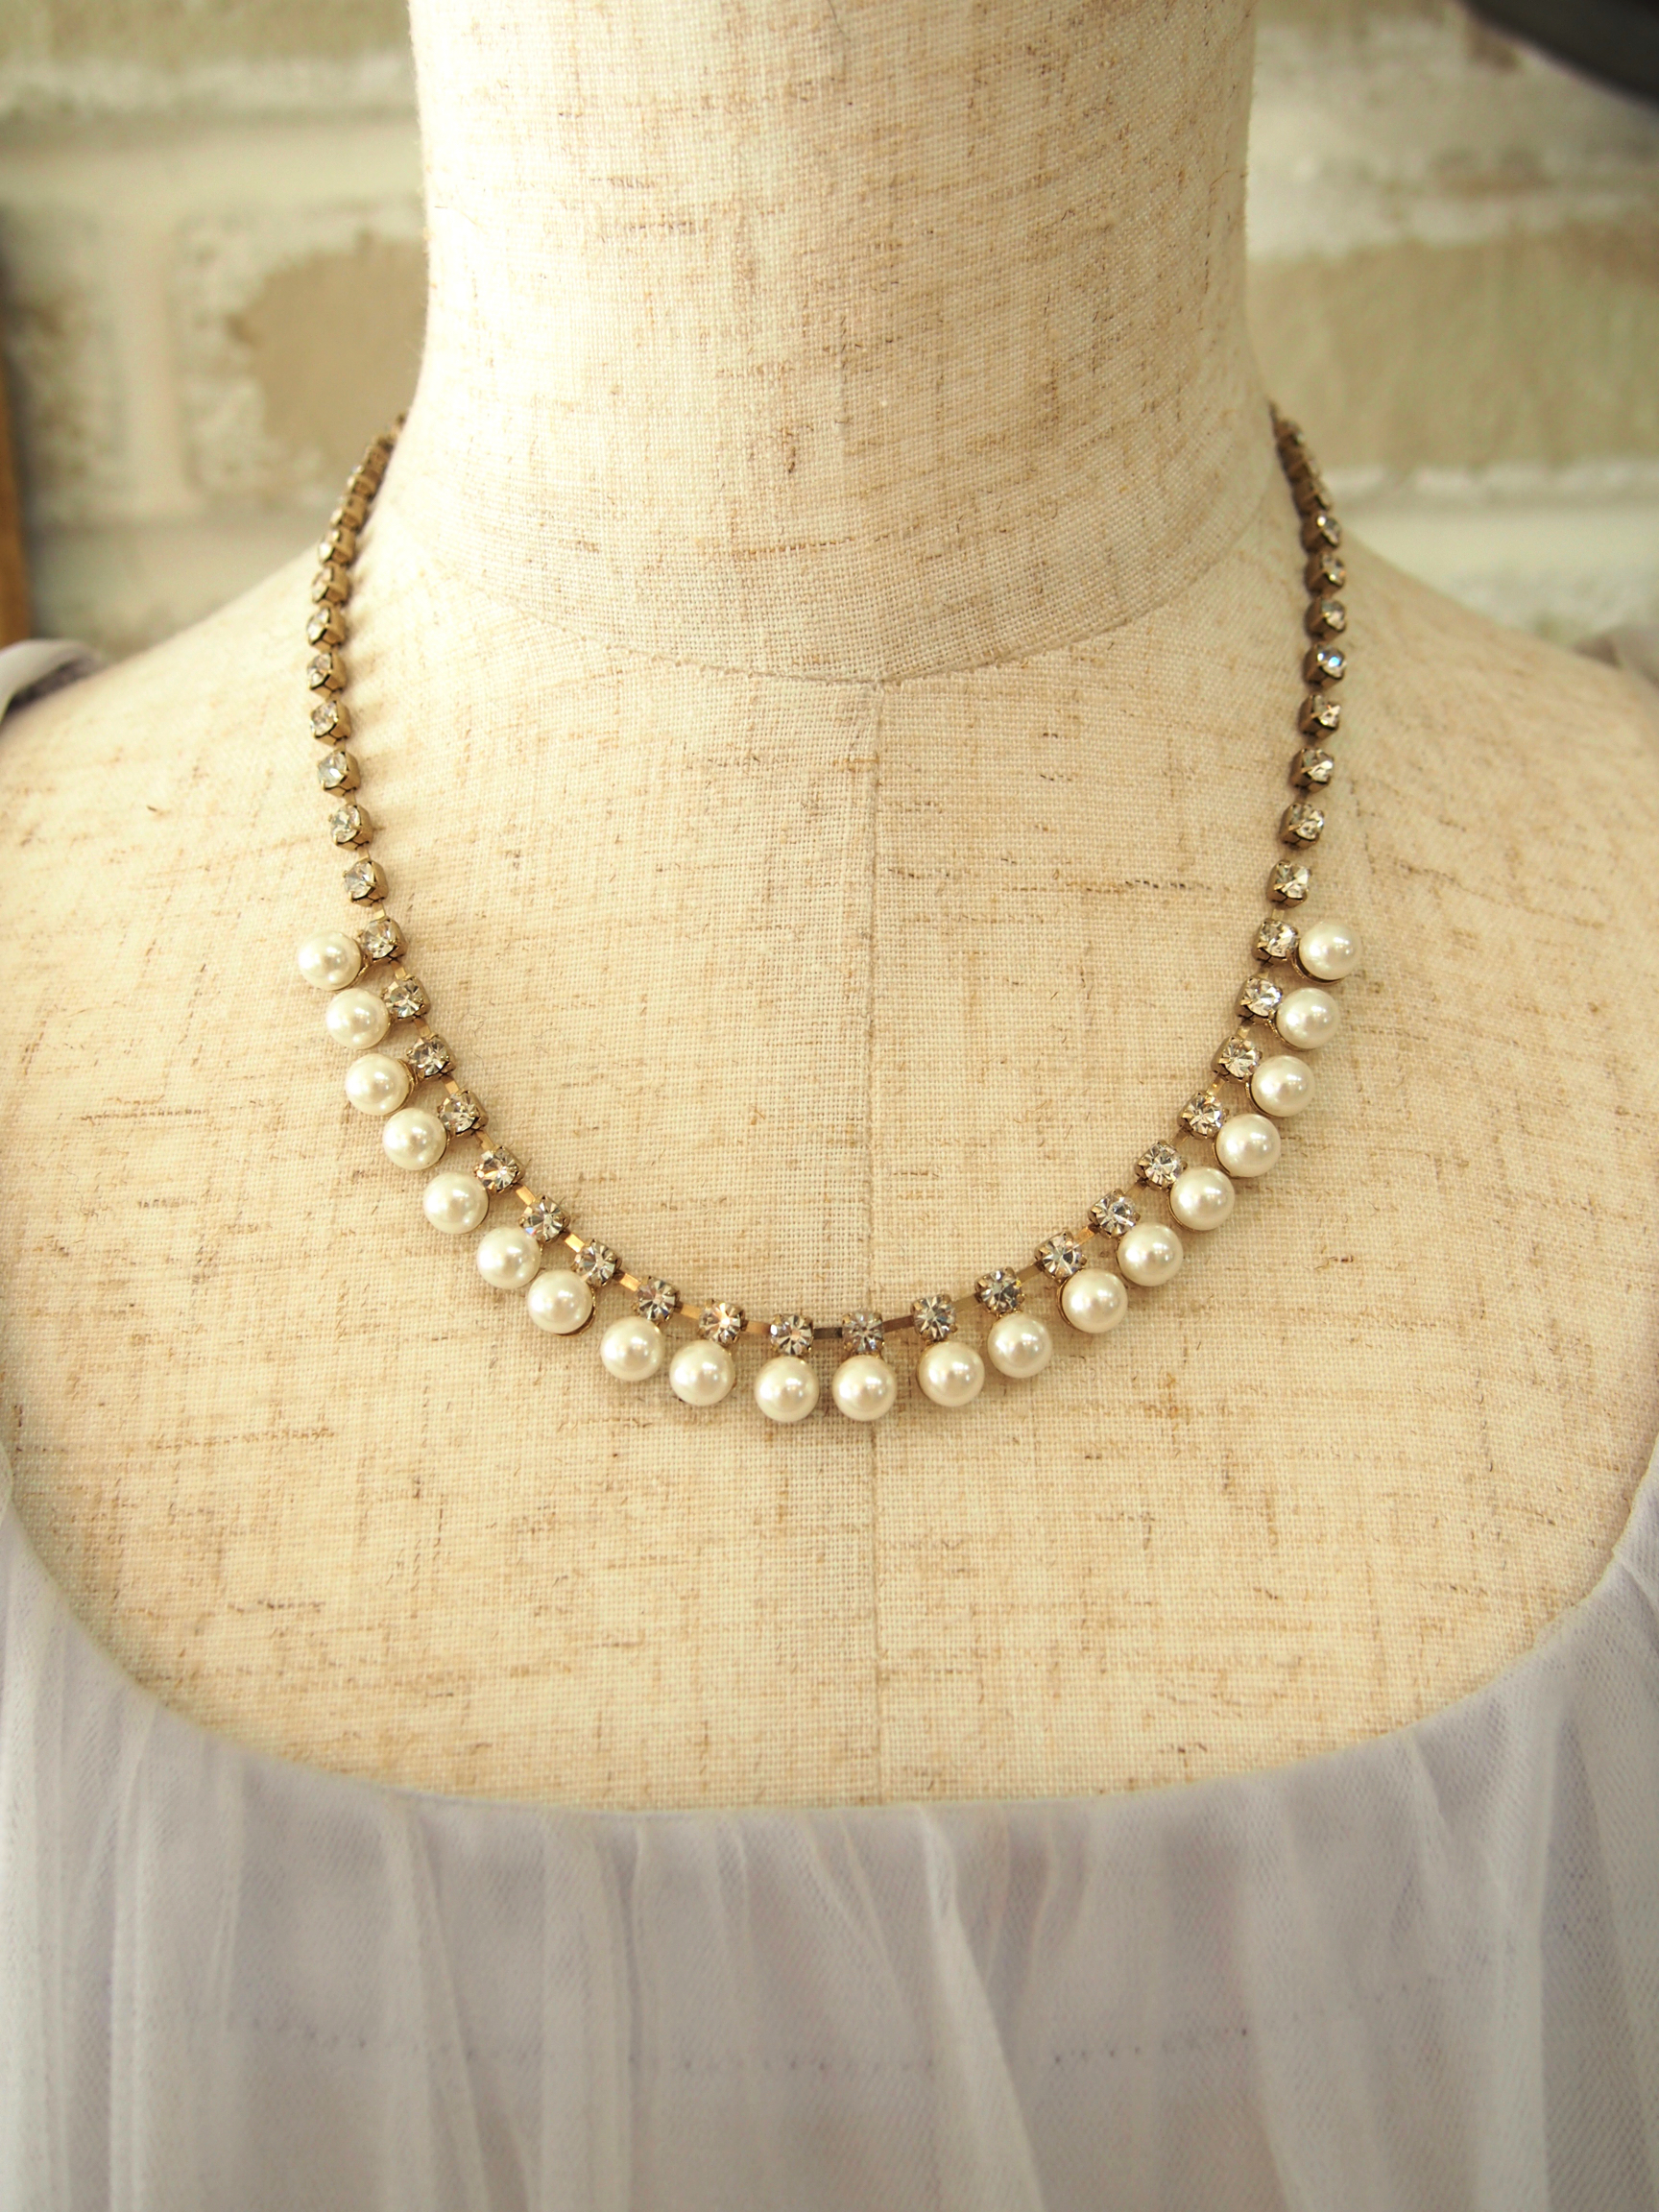 nr_necklace_152